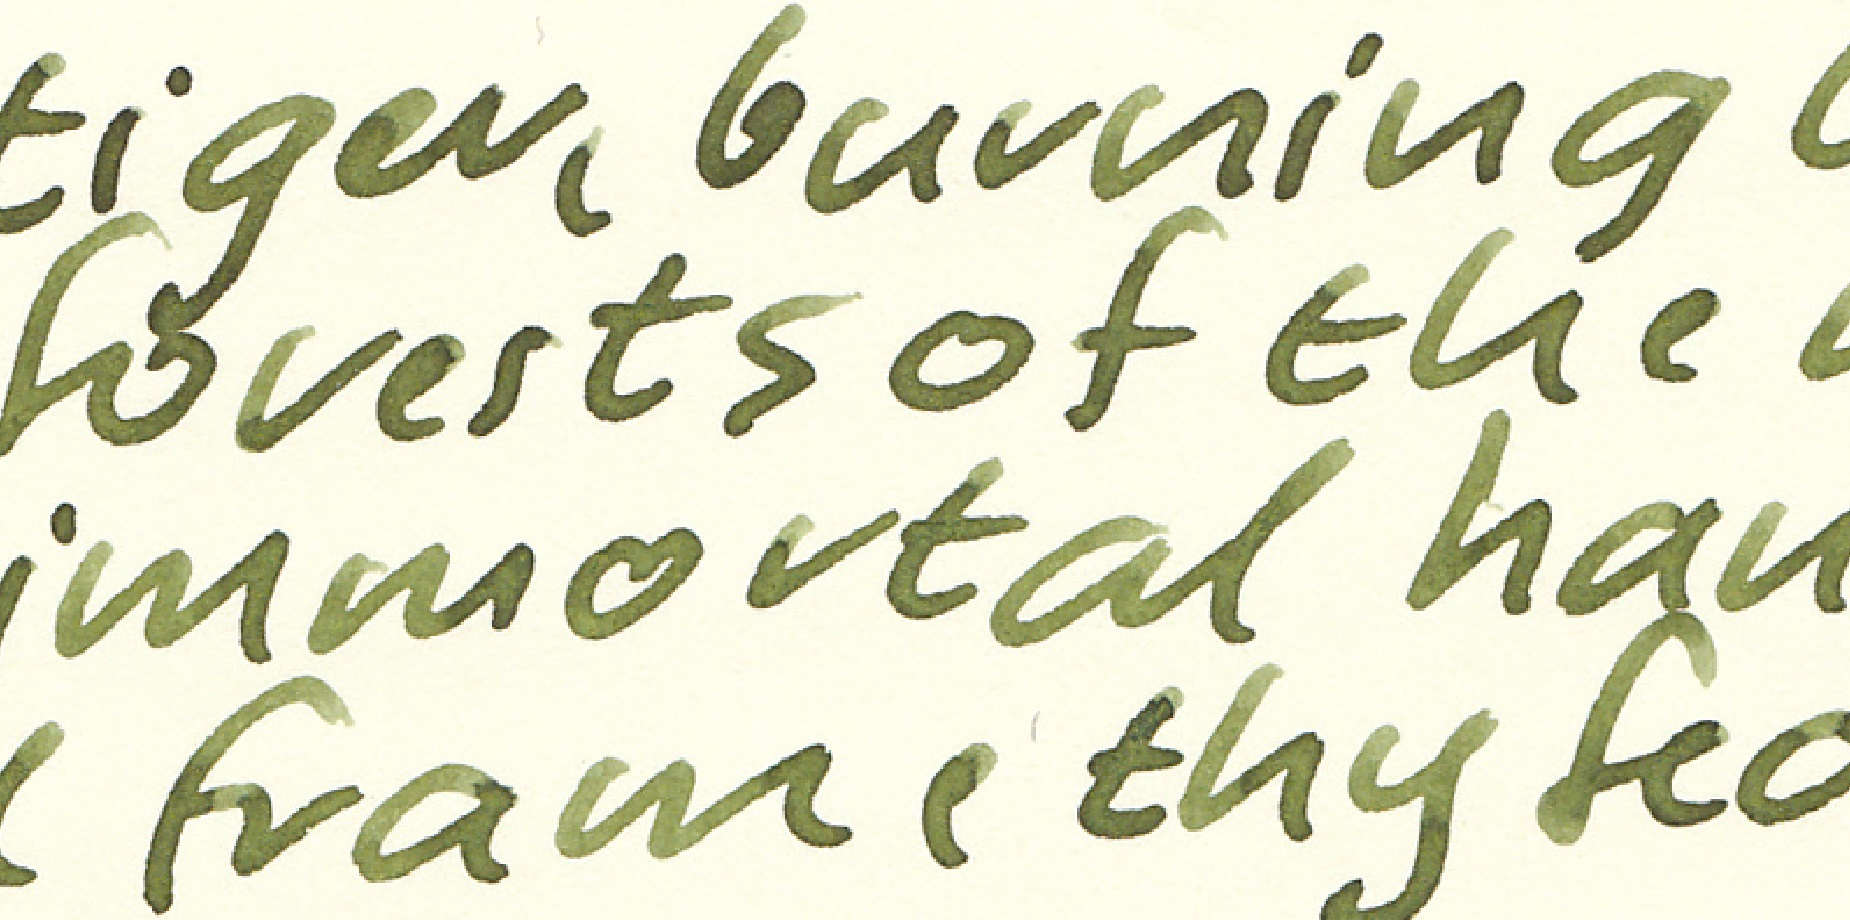 fpn_1463168256__classicgreen_diamine_tom